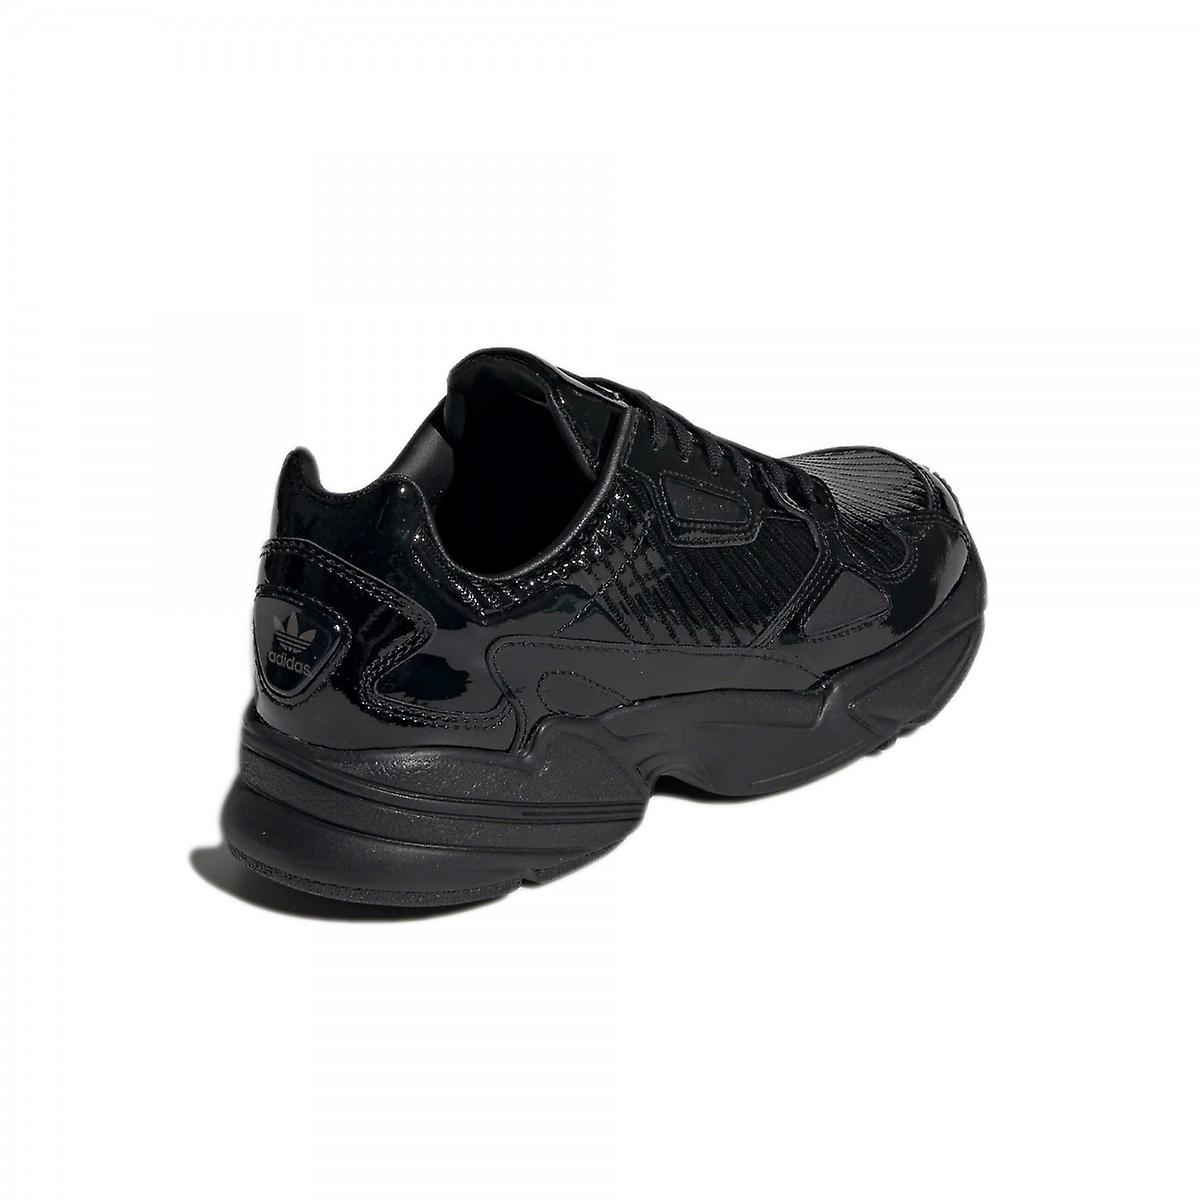 Basket mode Adidas Originals Falcon W Noir cQSha9